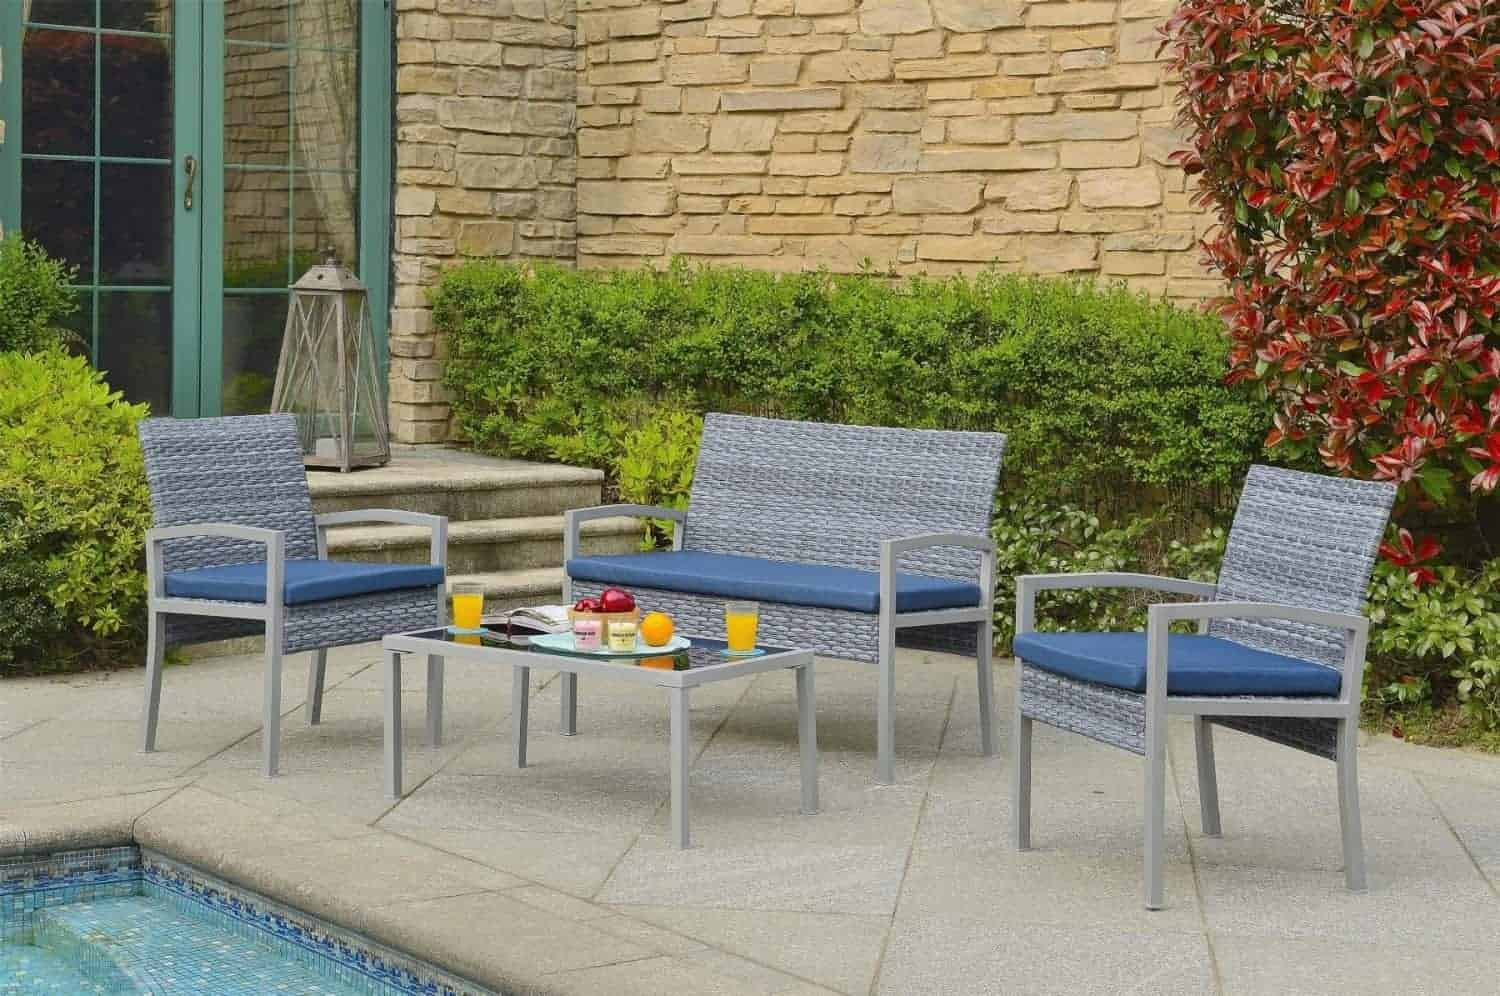 Compact Outdoor Wicker Conversation Set For Porch Or Balcony